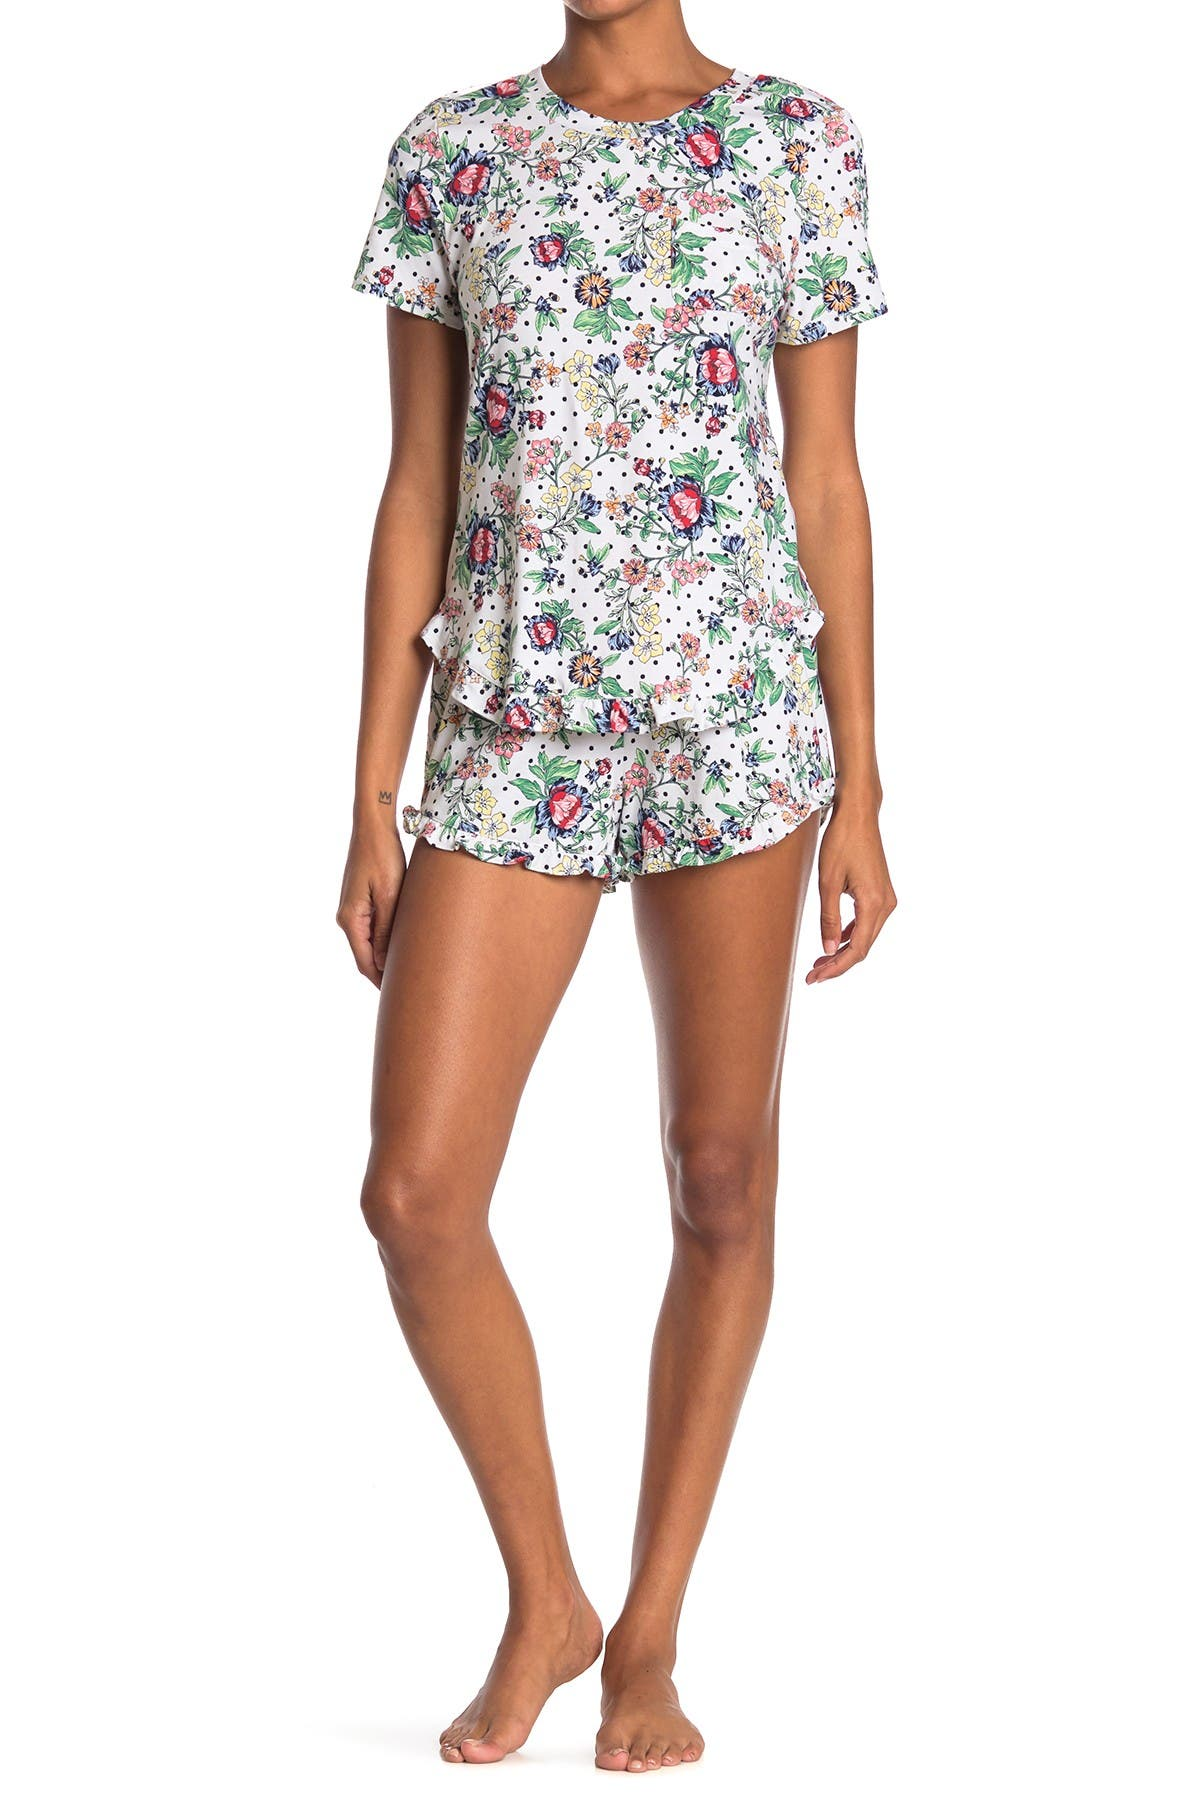 Image of Jane & Bleecker New York Cozy Patterned 2-Piece Frill Pajama Set